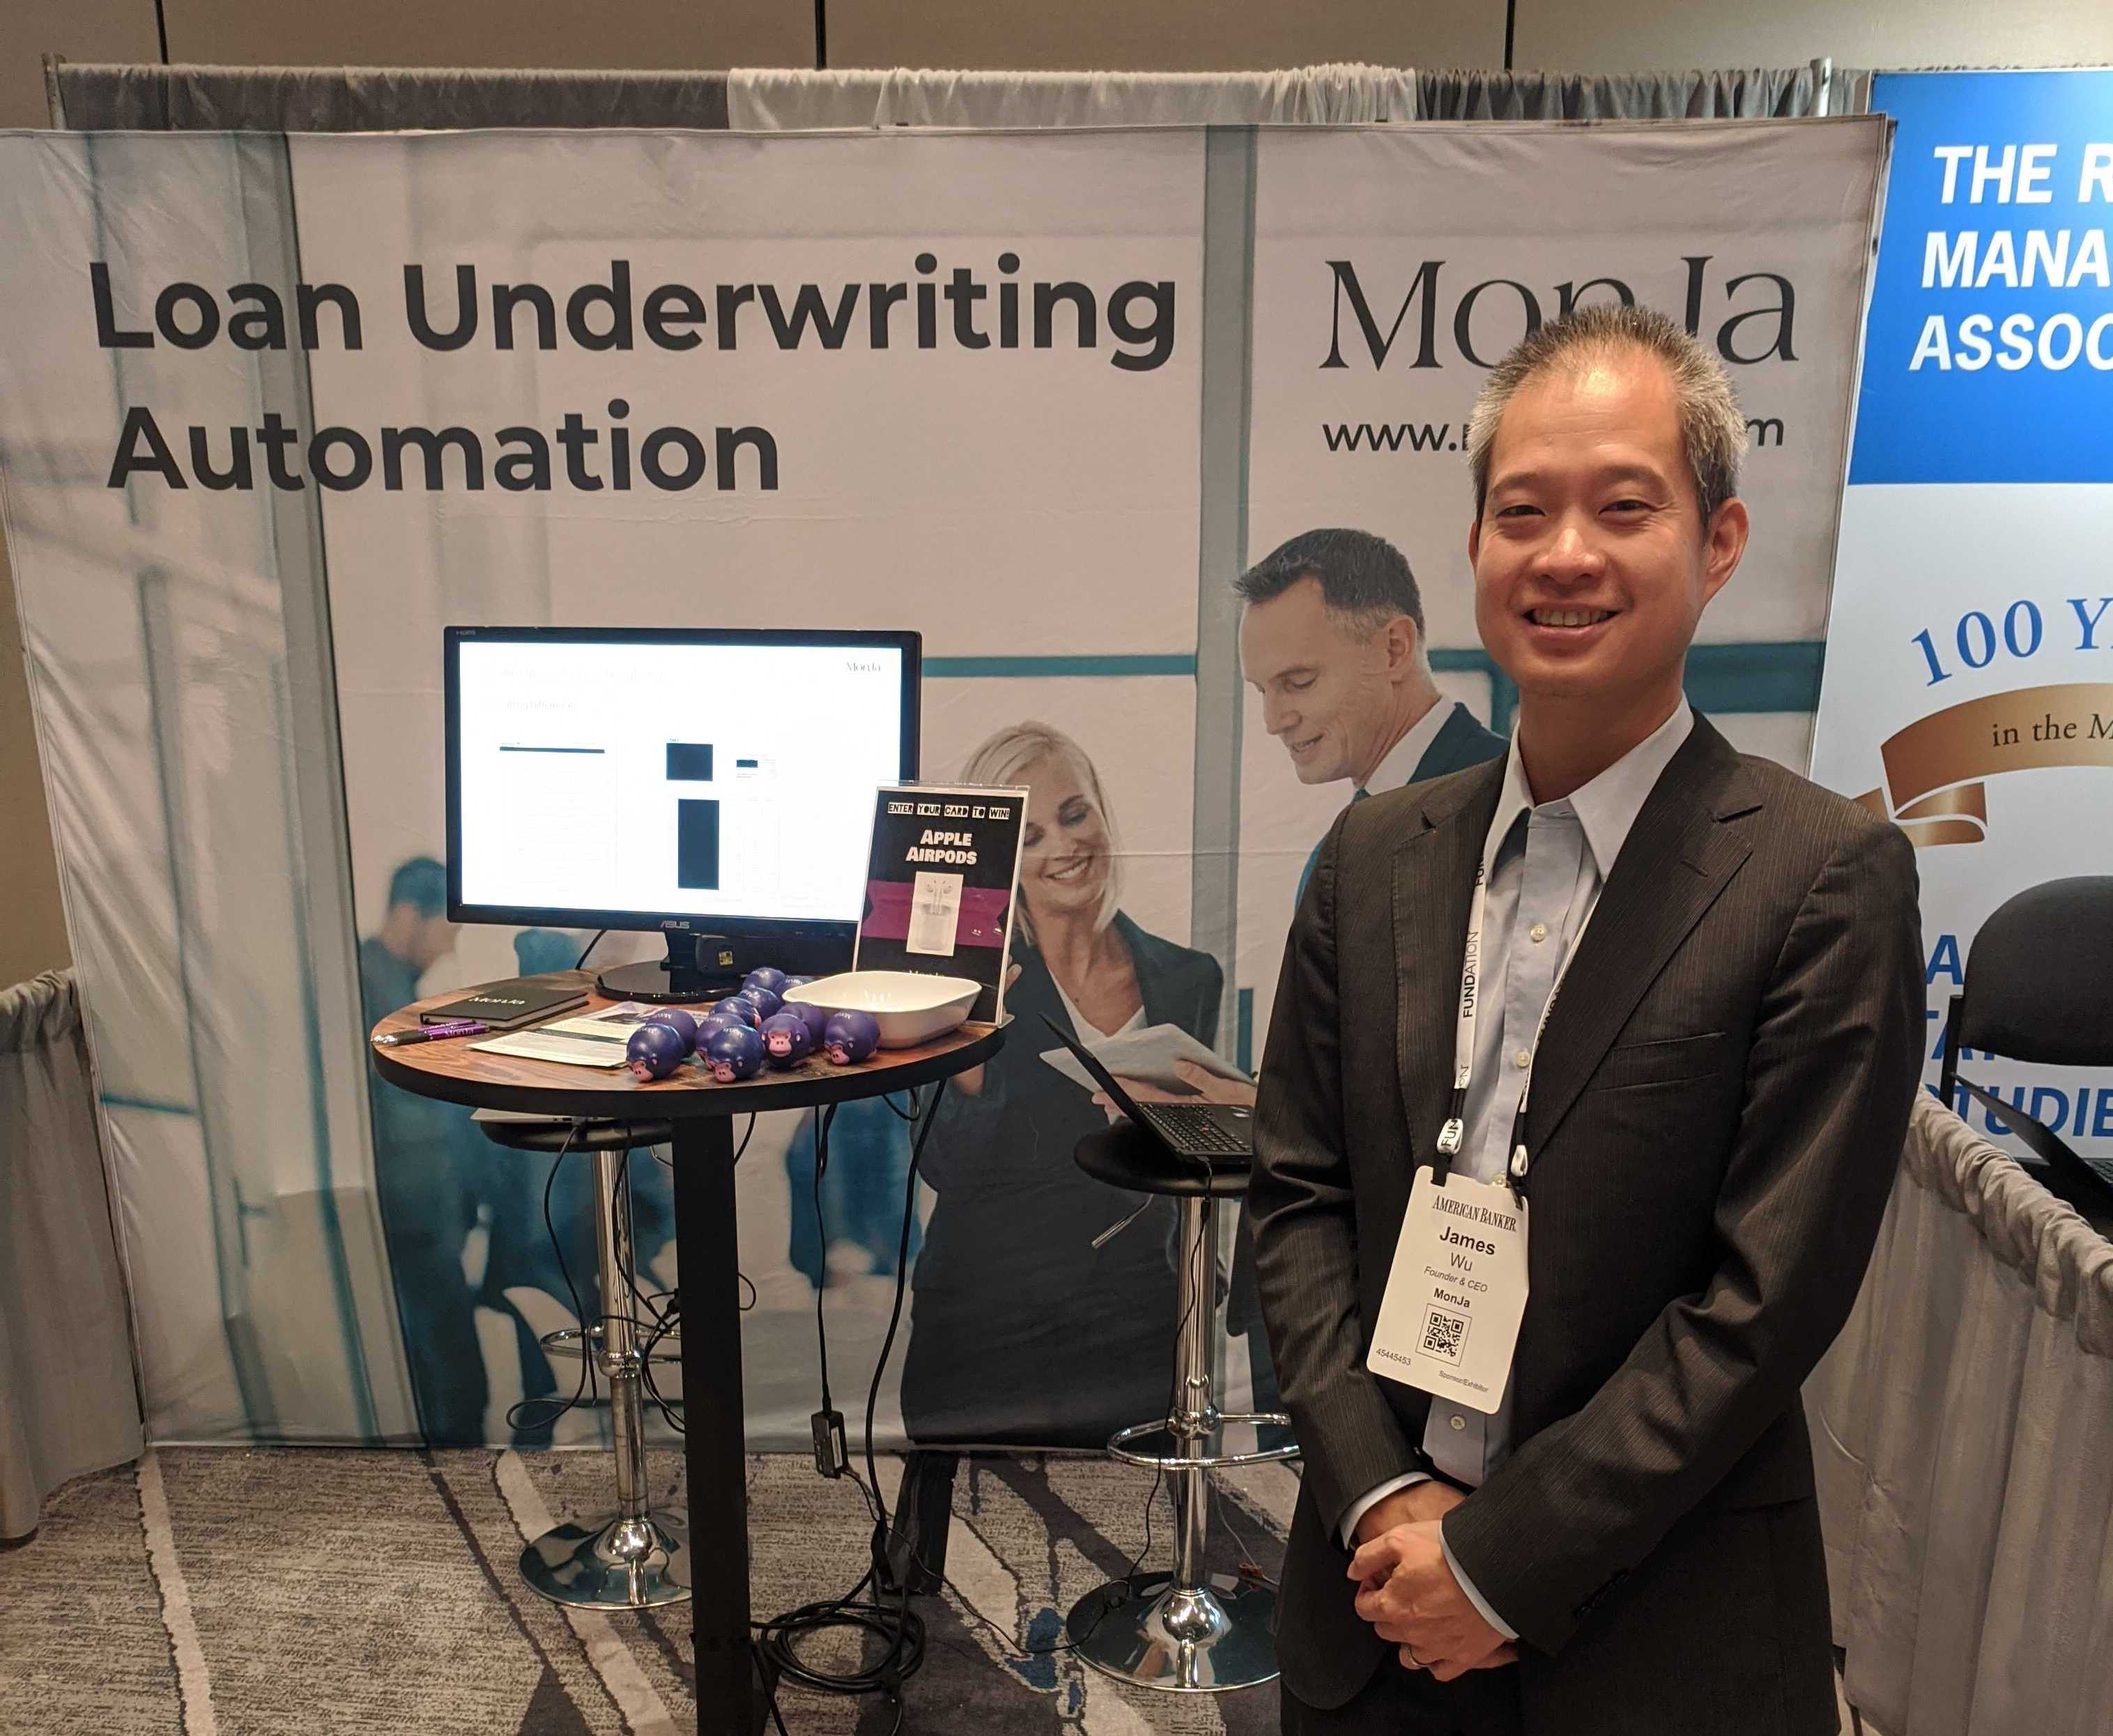 James Wu and MonJa's booth at Small Biz: Banking Conference in Los Angeles